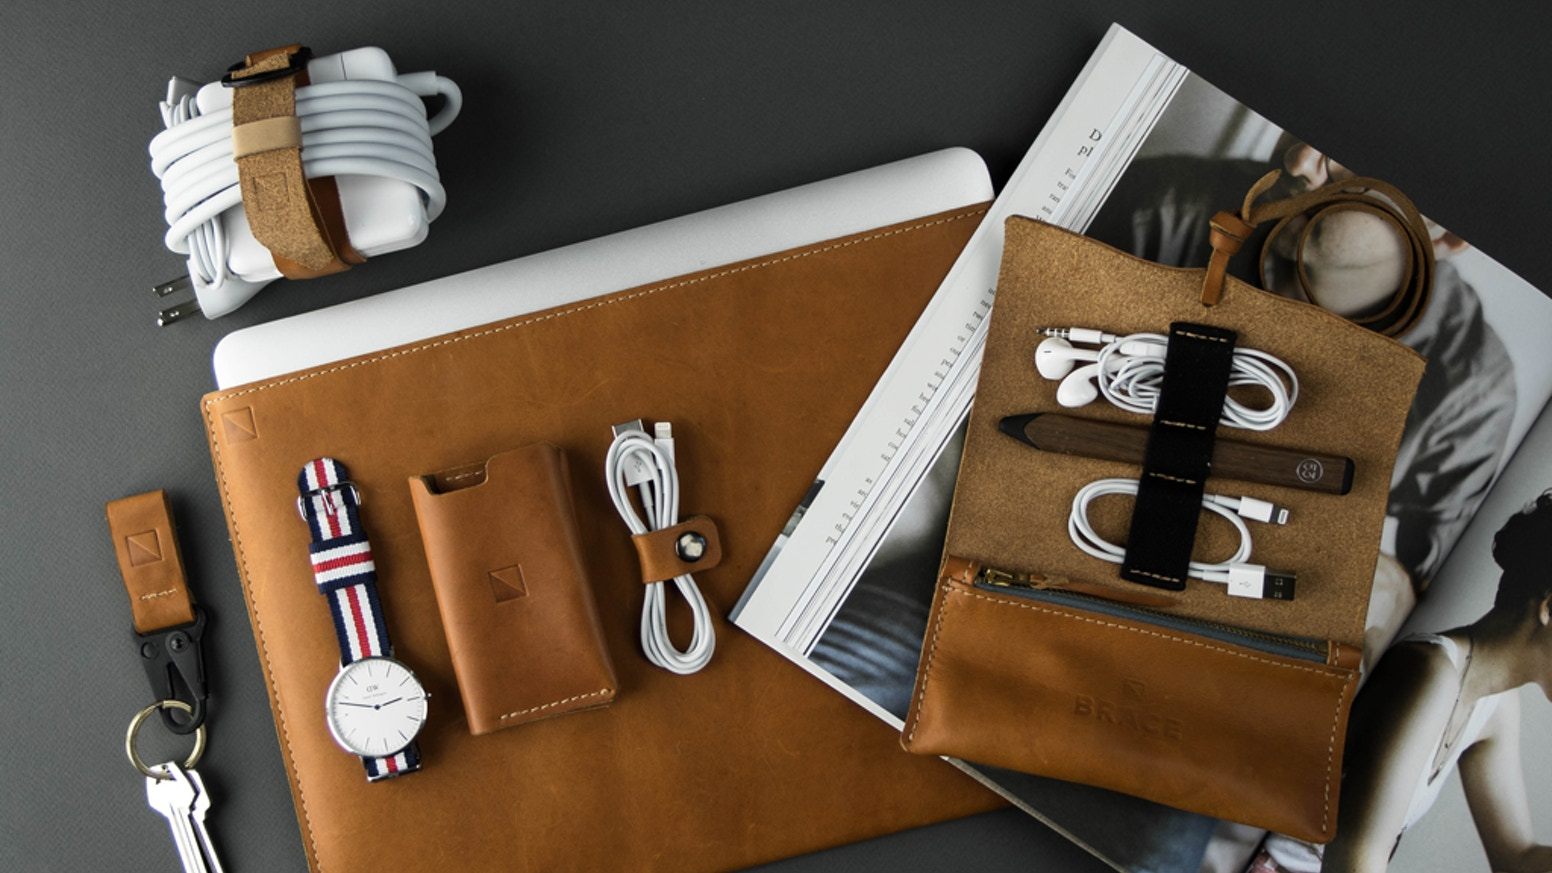 Premium Leather Accessories By Leatherya.com